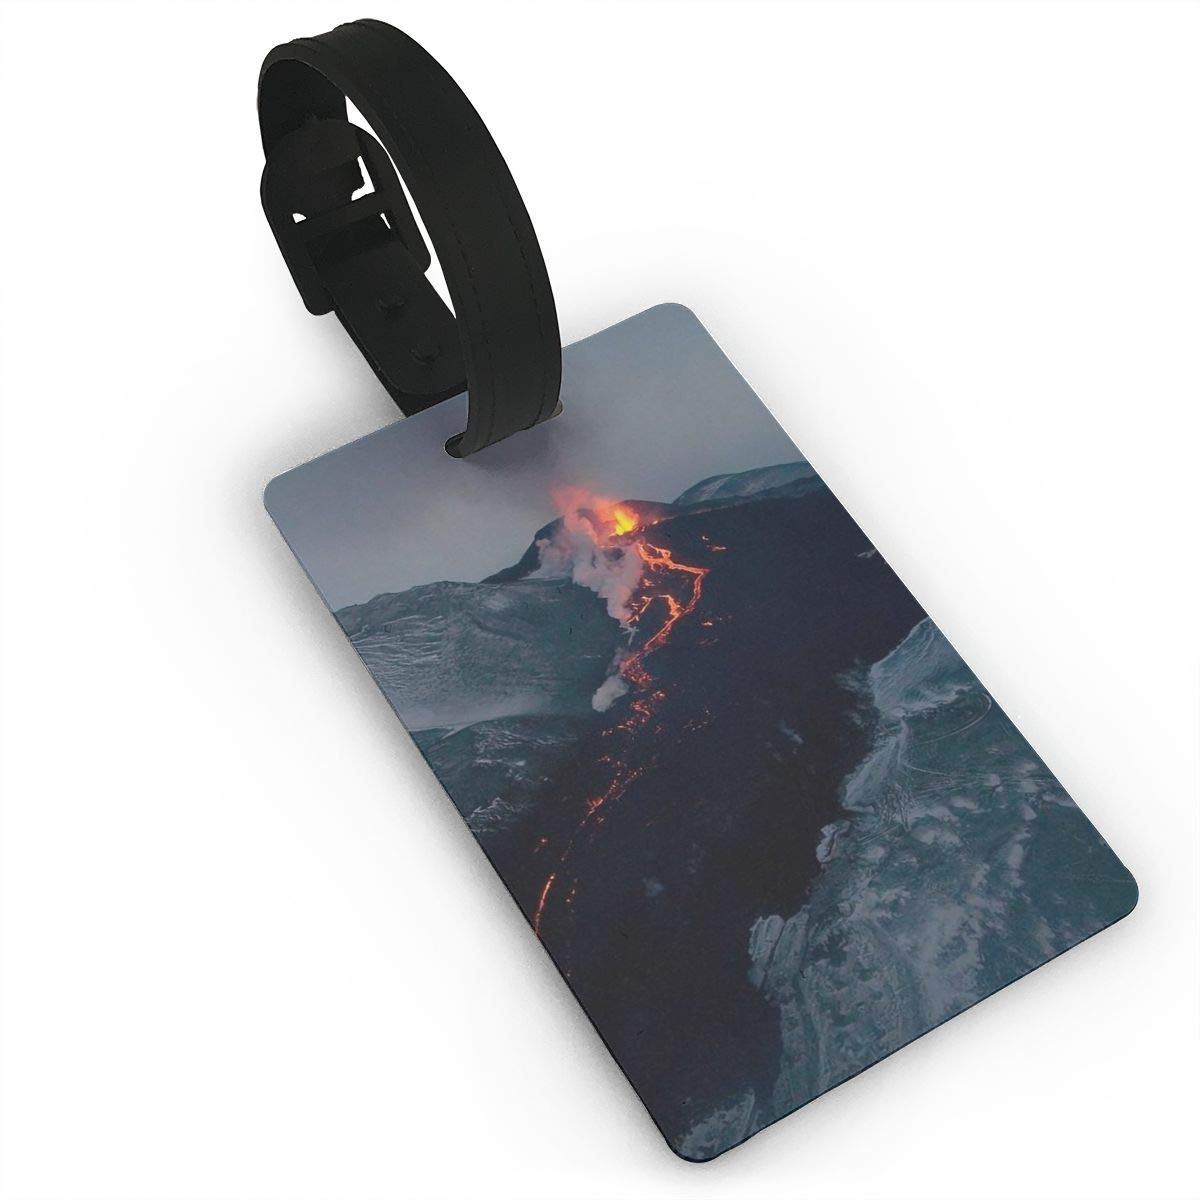 Volcano Erupting Cruise Luggage Tag For Suitcase Bag Accessories 2 Pack Luggage Tags